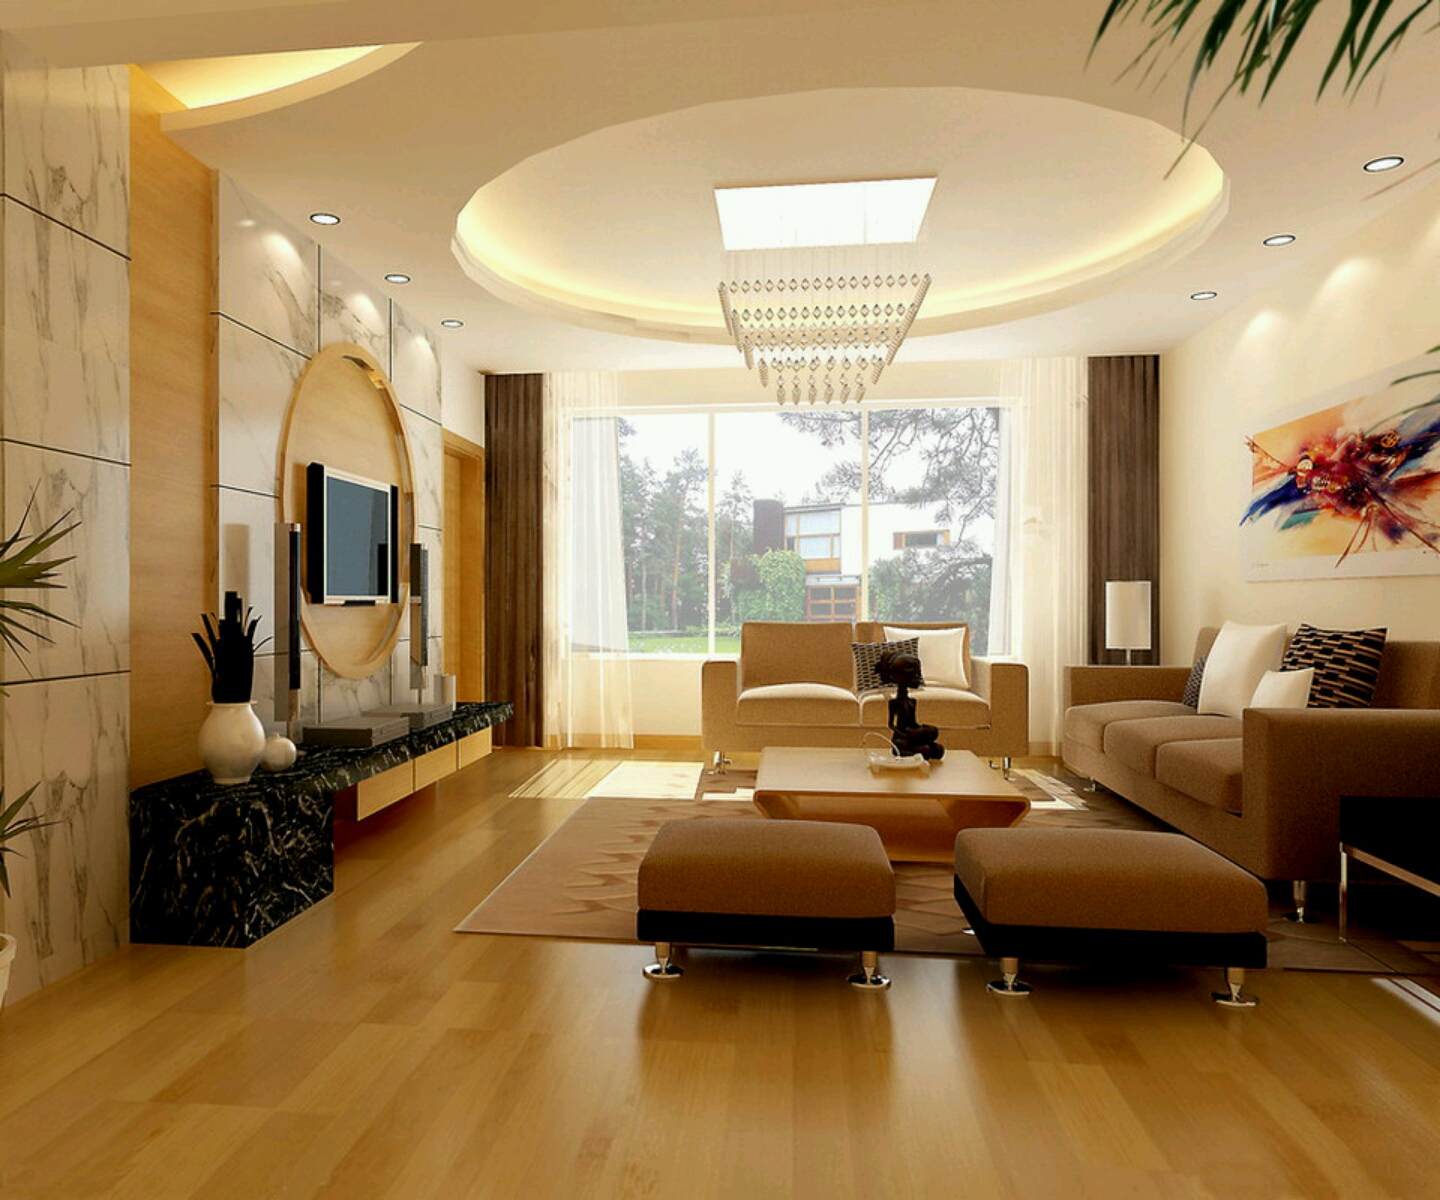 Modern interior decoration living rooms ceiling designs for Sitting room interior